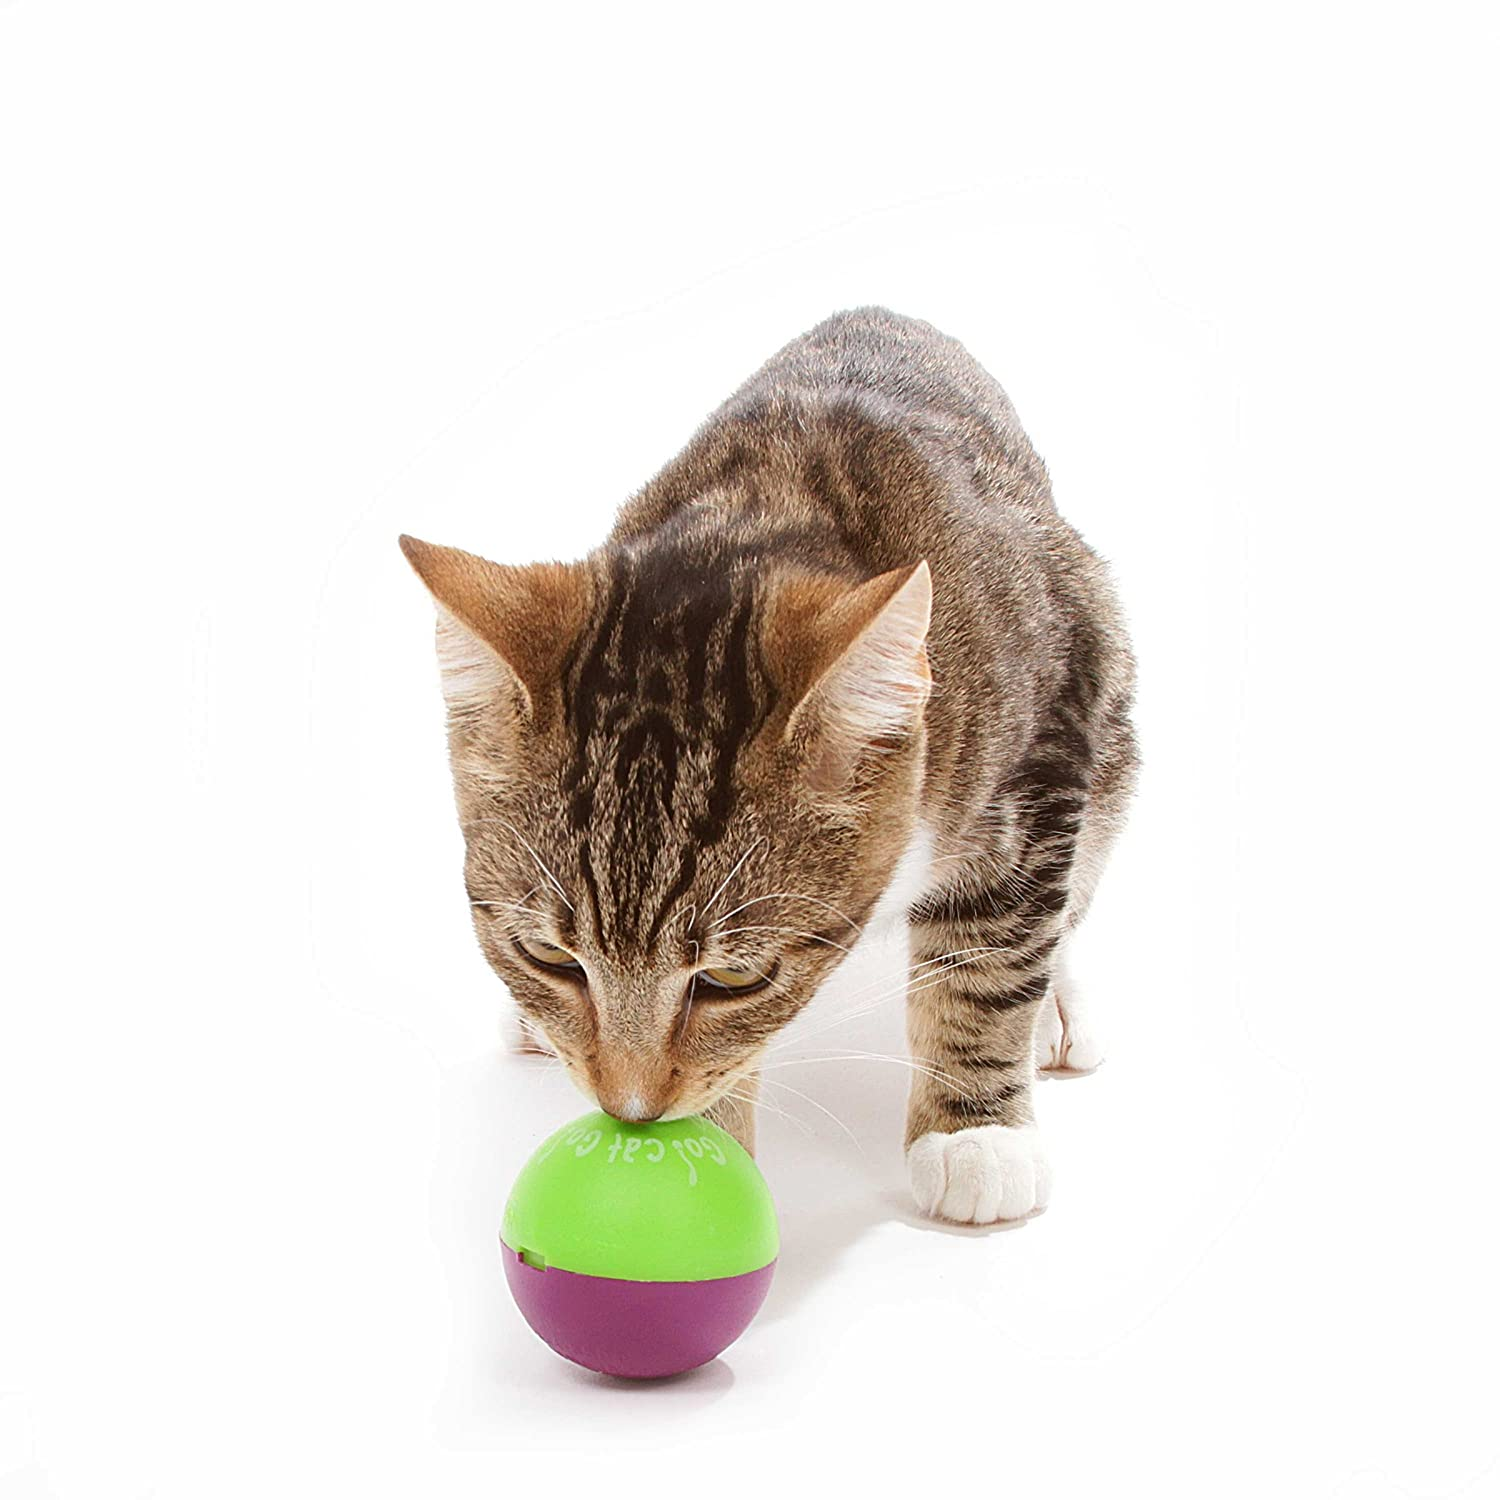 Our Pets Play-N-Treat Twin Pack Cat Toy 1080010279